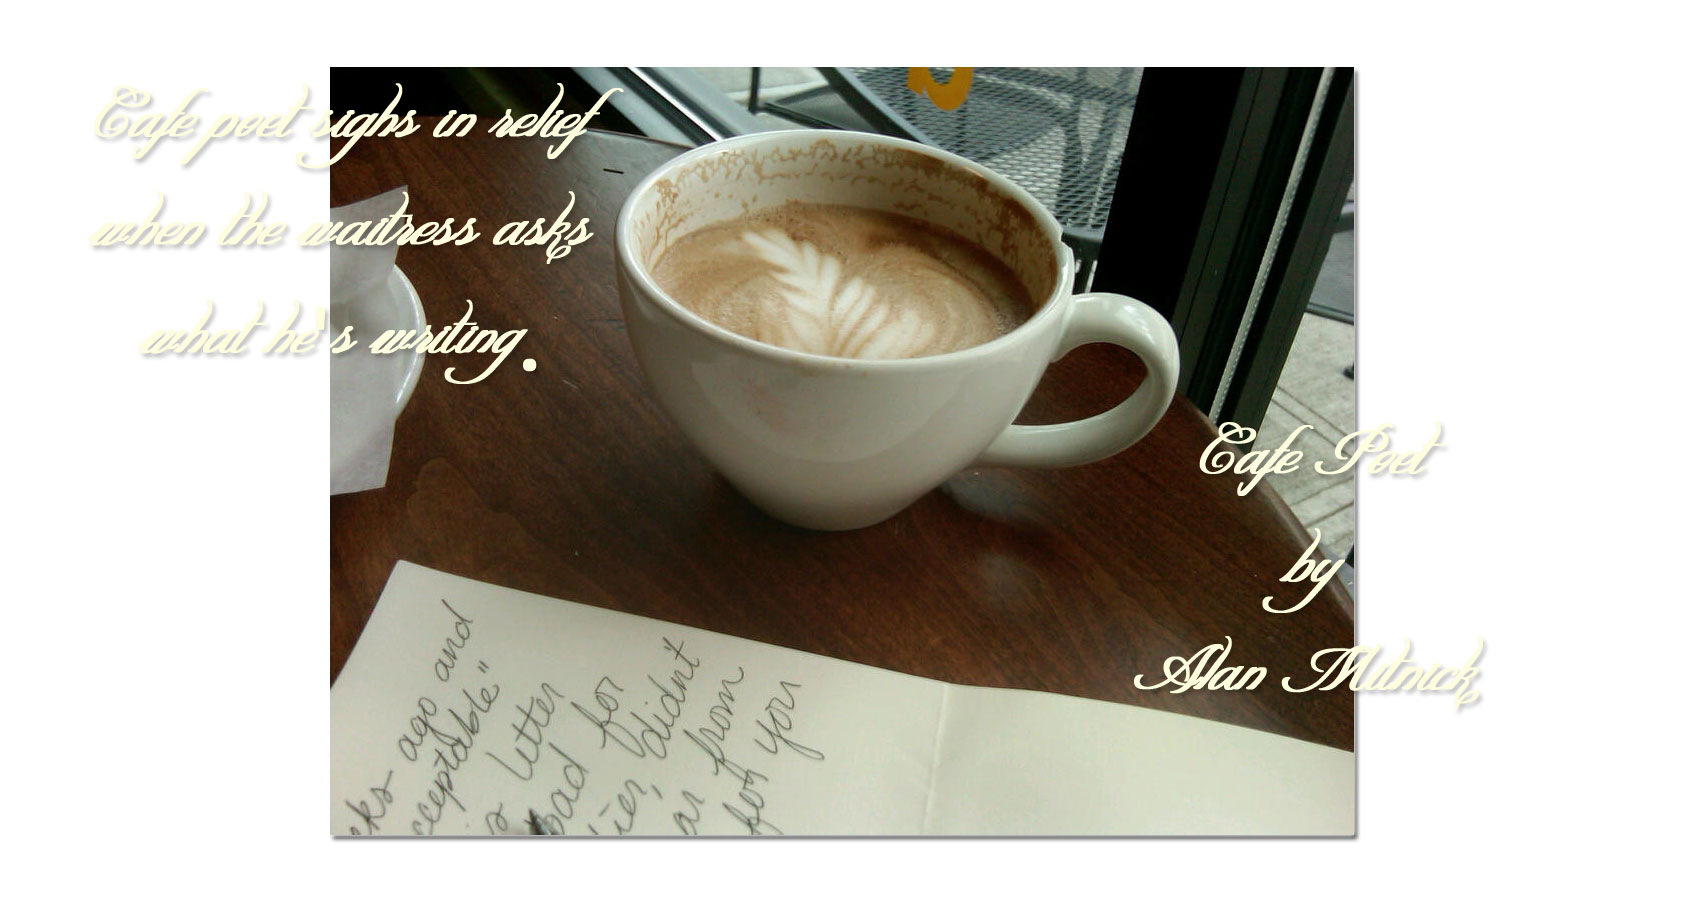 Cafe Poet written by Alan Mitnick at Spillwords.com